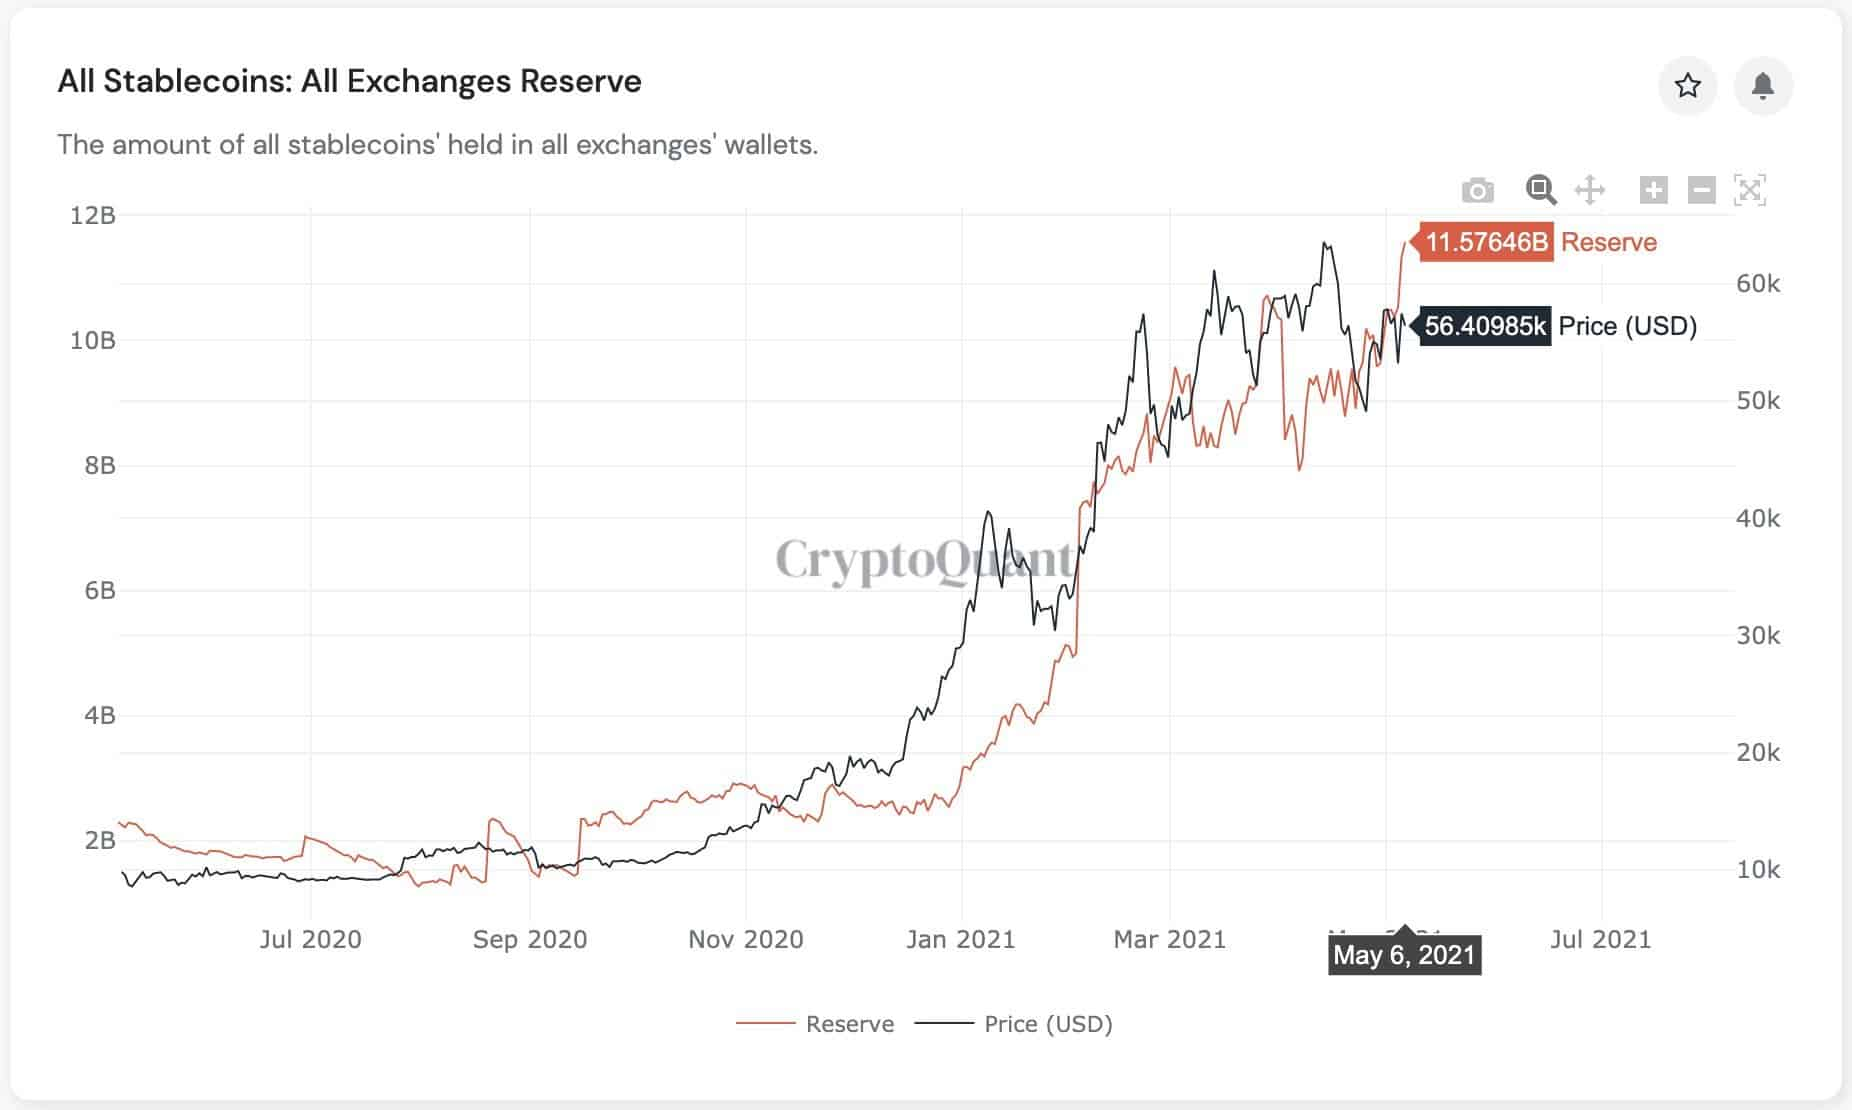 Stablecoins Ratio on Exchanges. Source: CryptoQuant